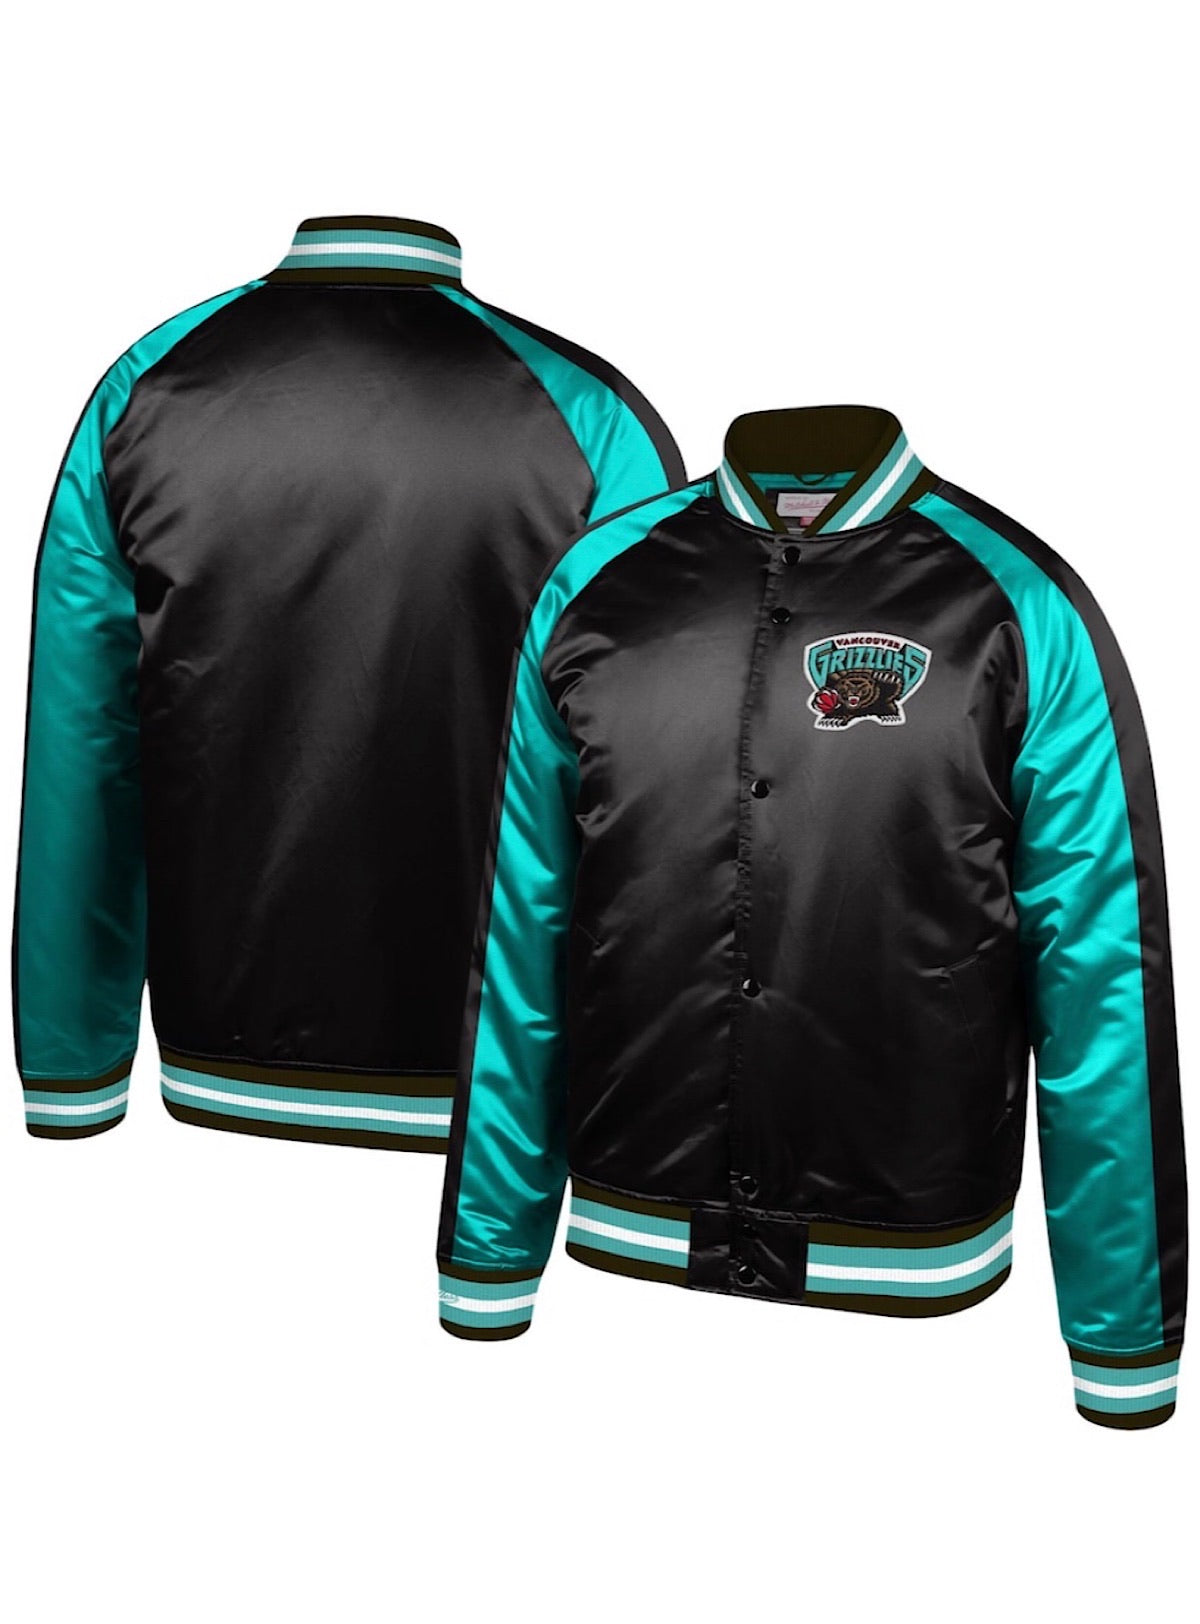 Mitchell & Ness Jacket - Color Blocked Satin - Vancouver Grizzlies - Teal And Black - STJKSC19007